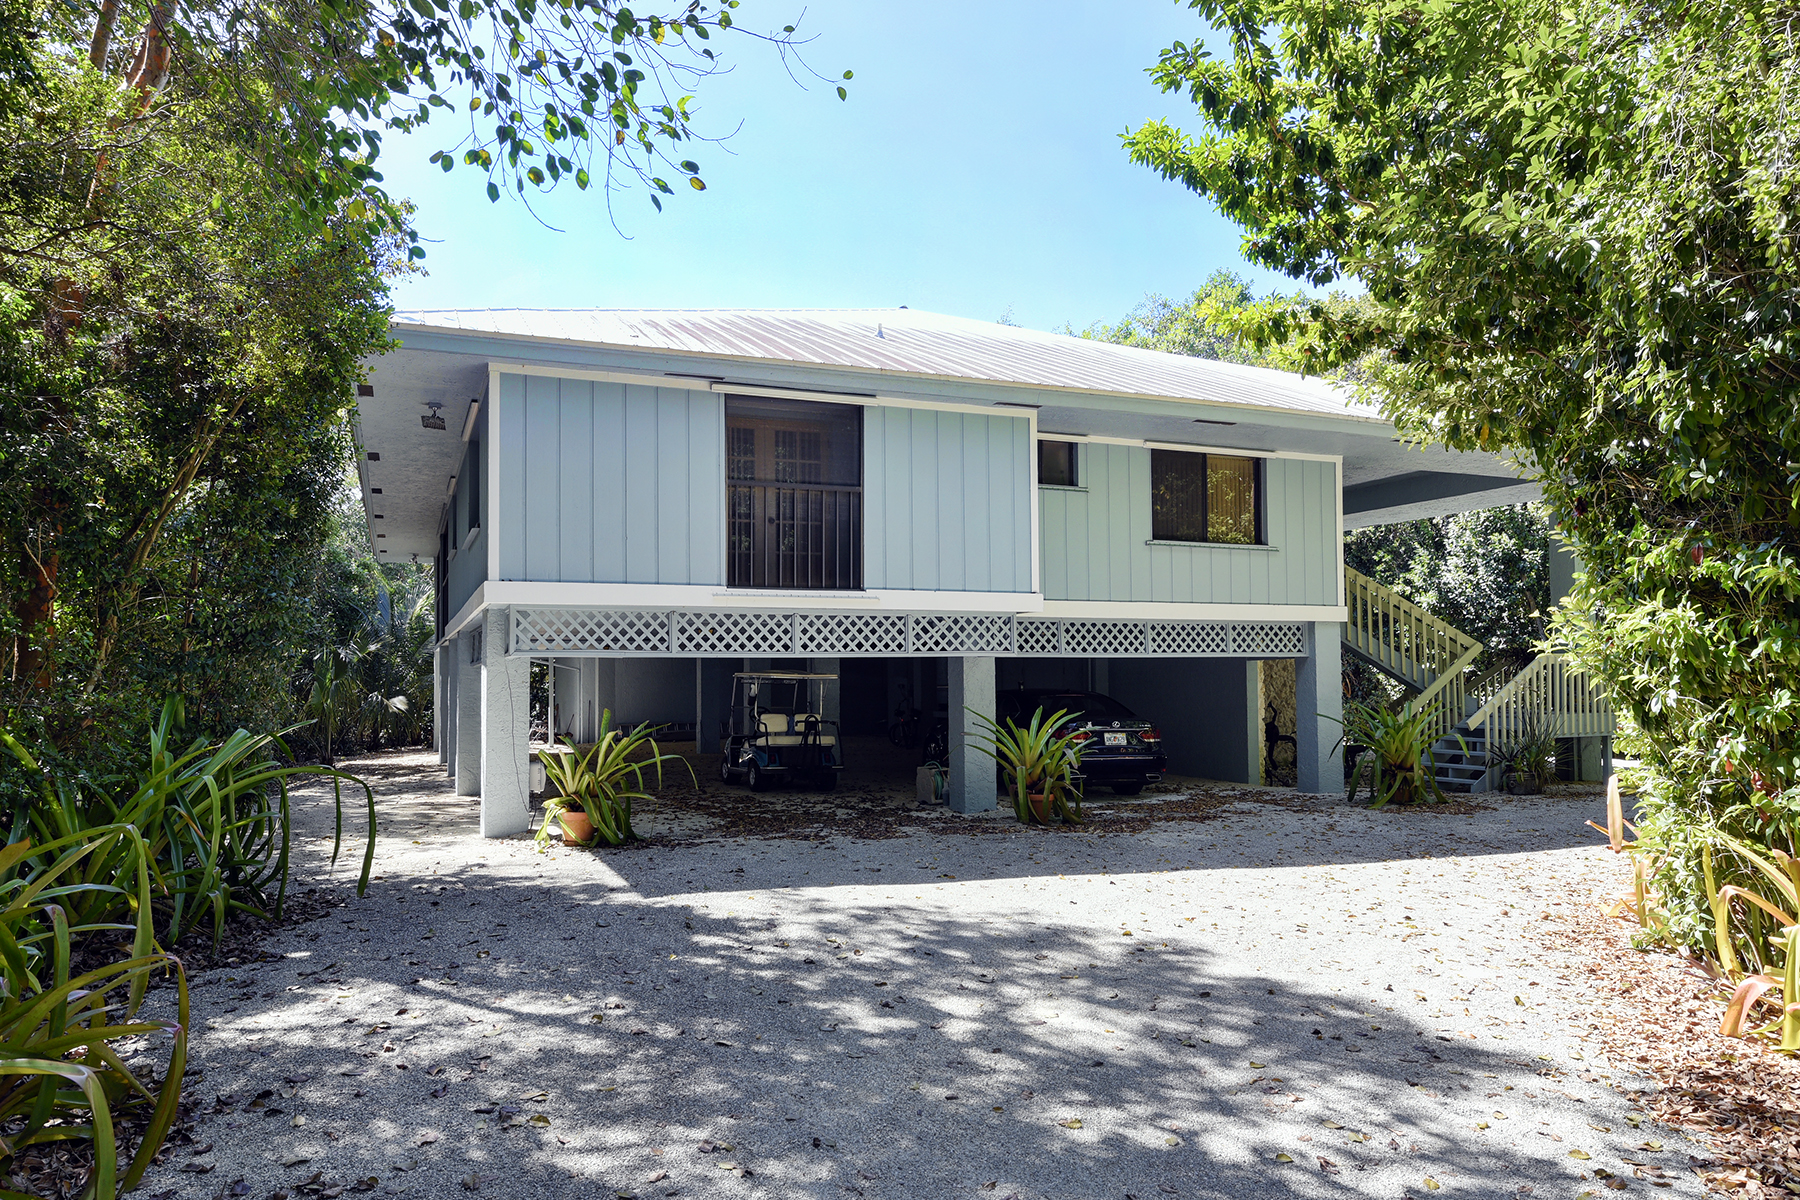 Single Family Home for Sale at 21 Dispatch Creek Key Largo, Florida 33037 United States